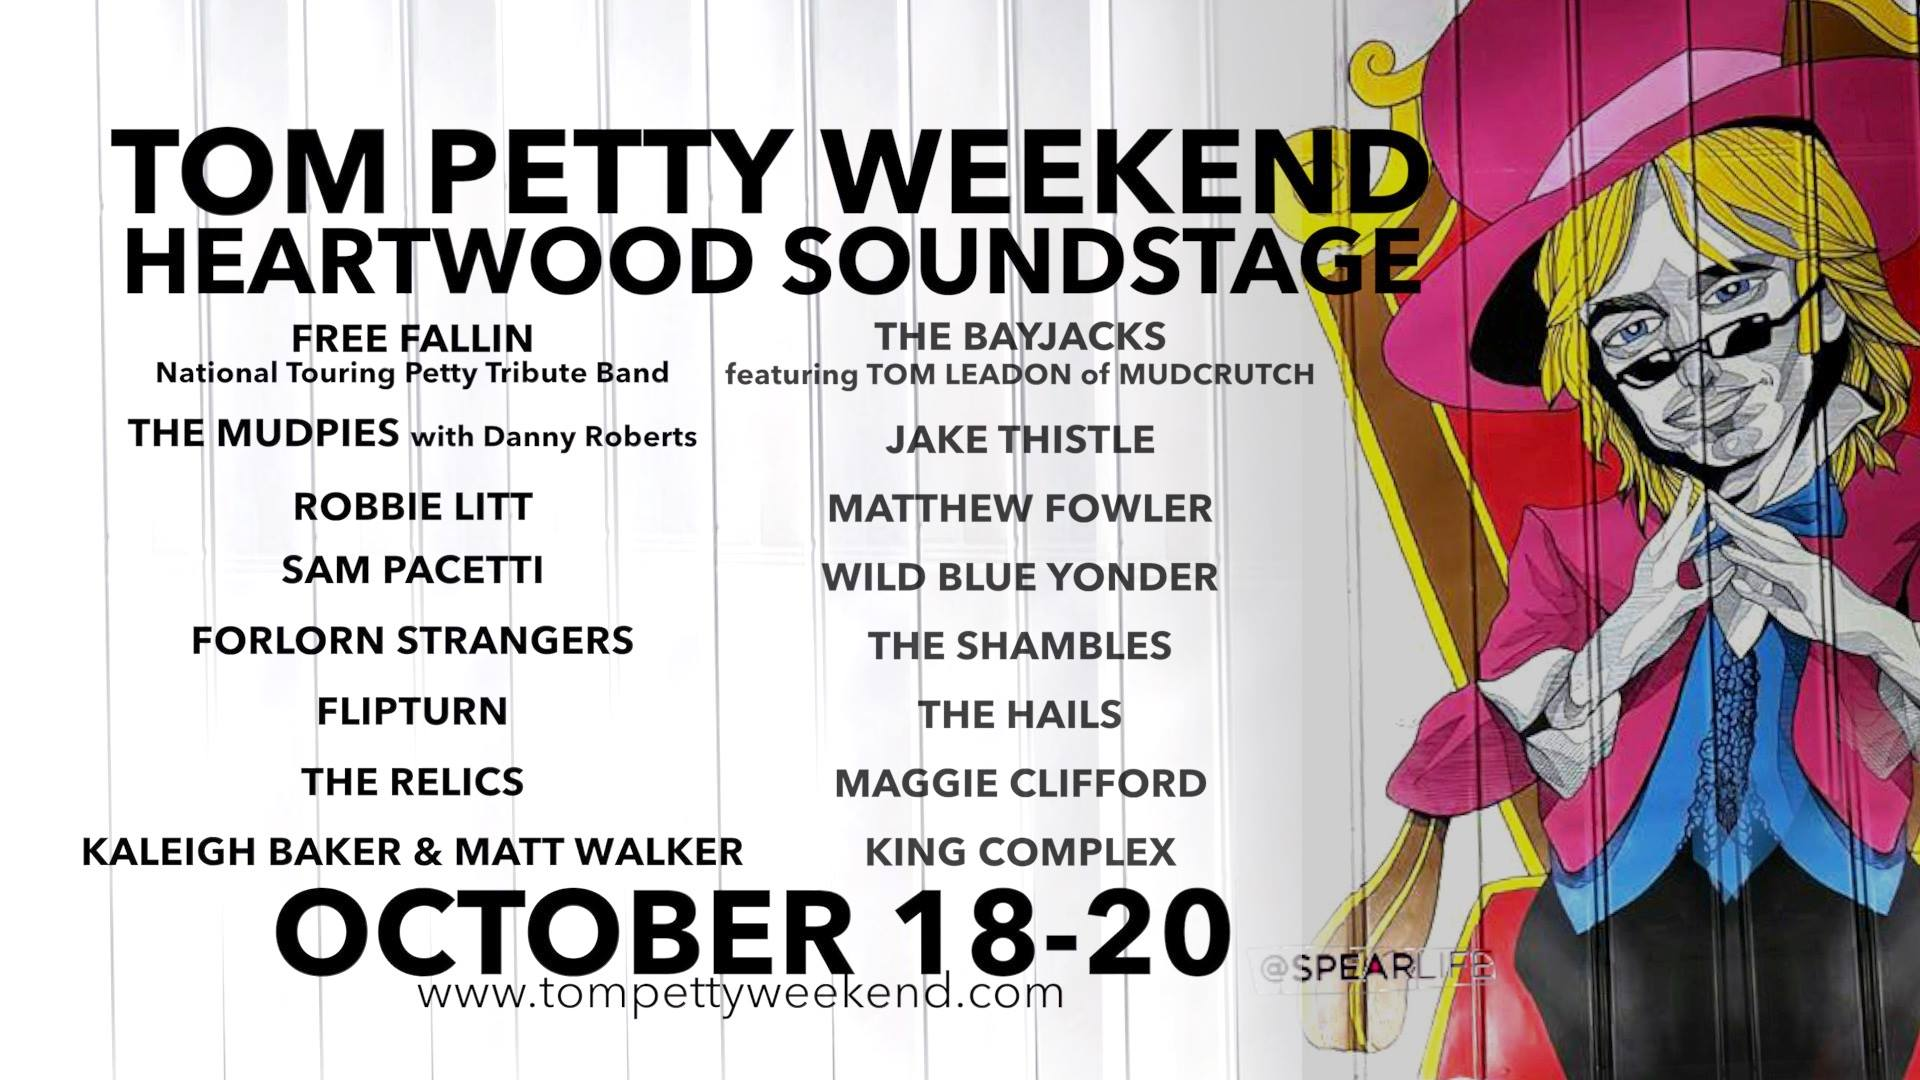 Tom Petty Weekend